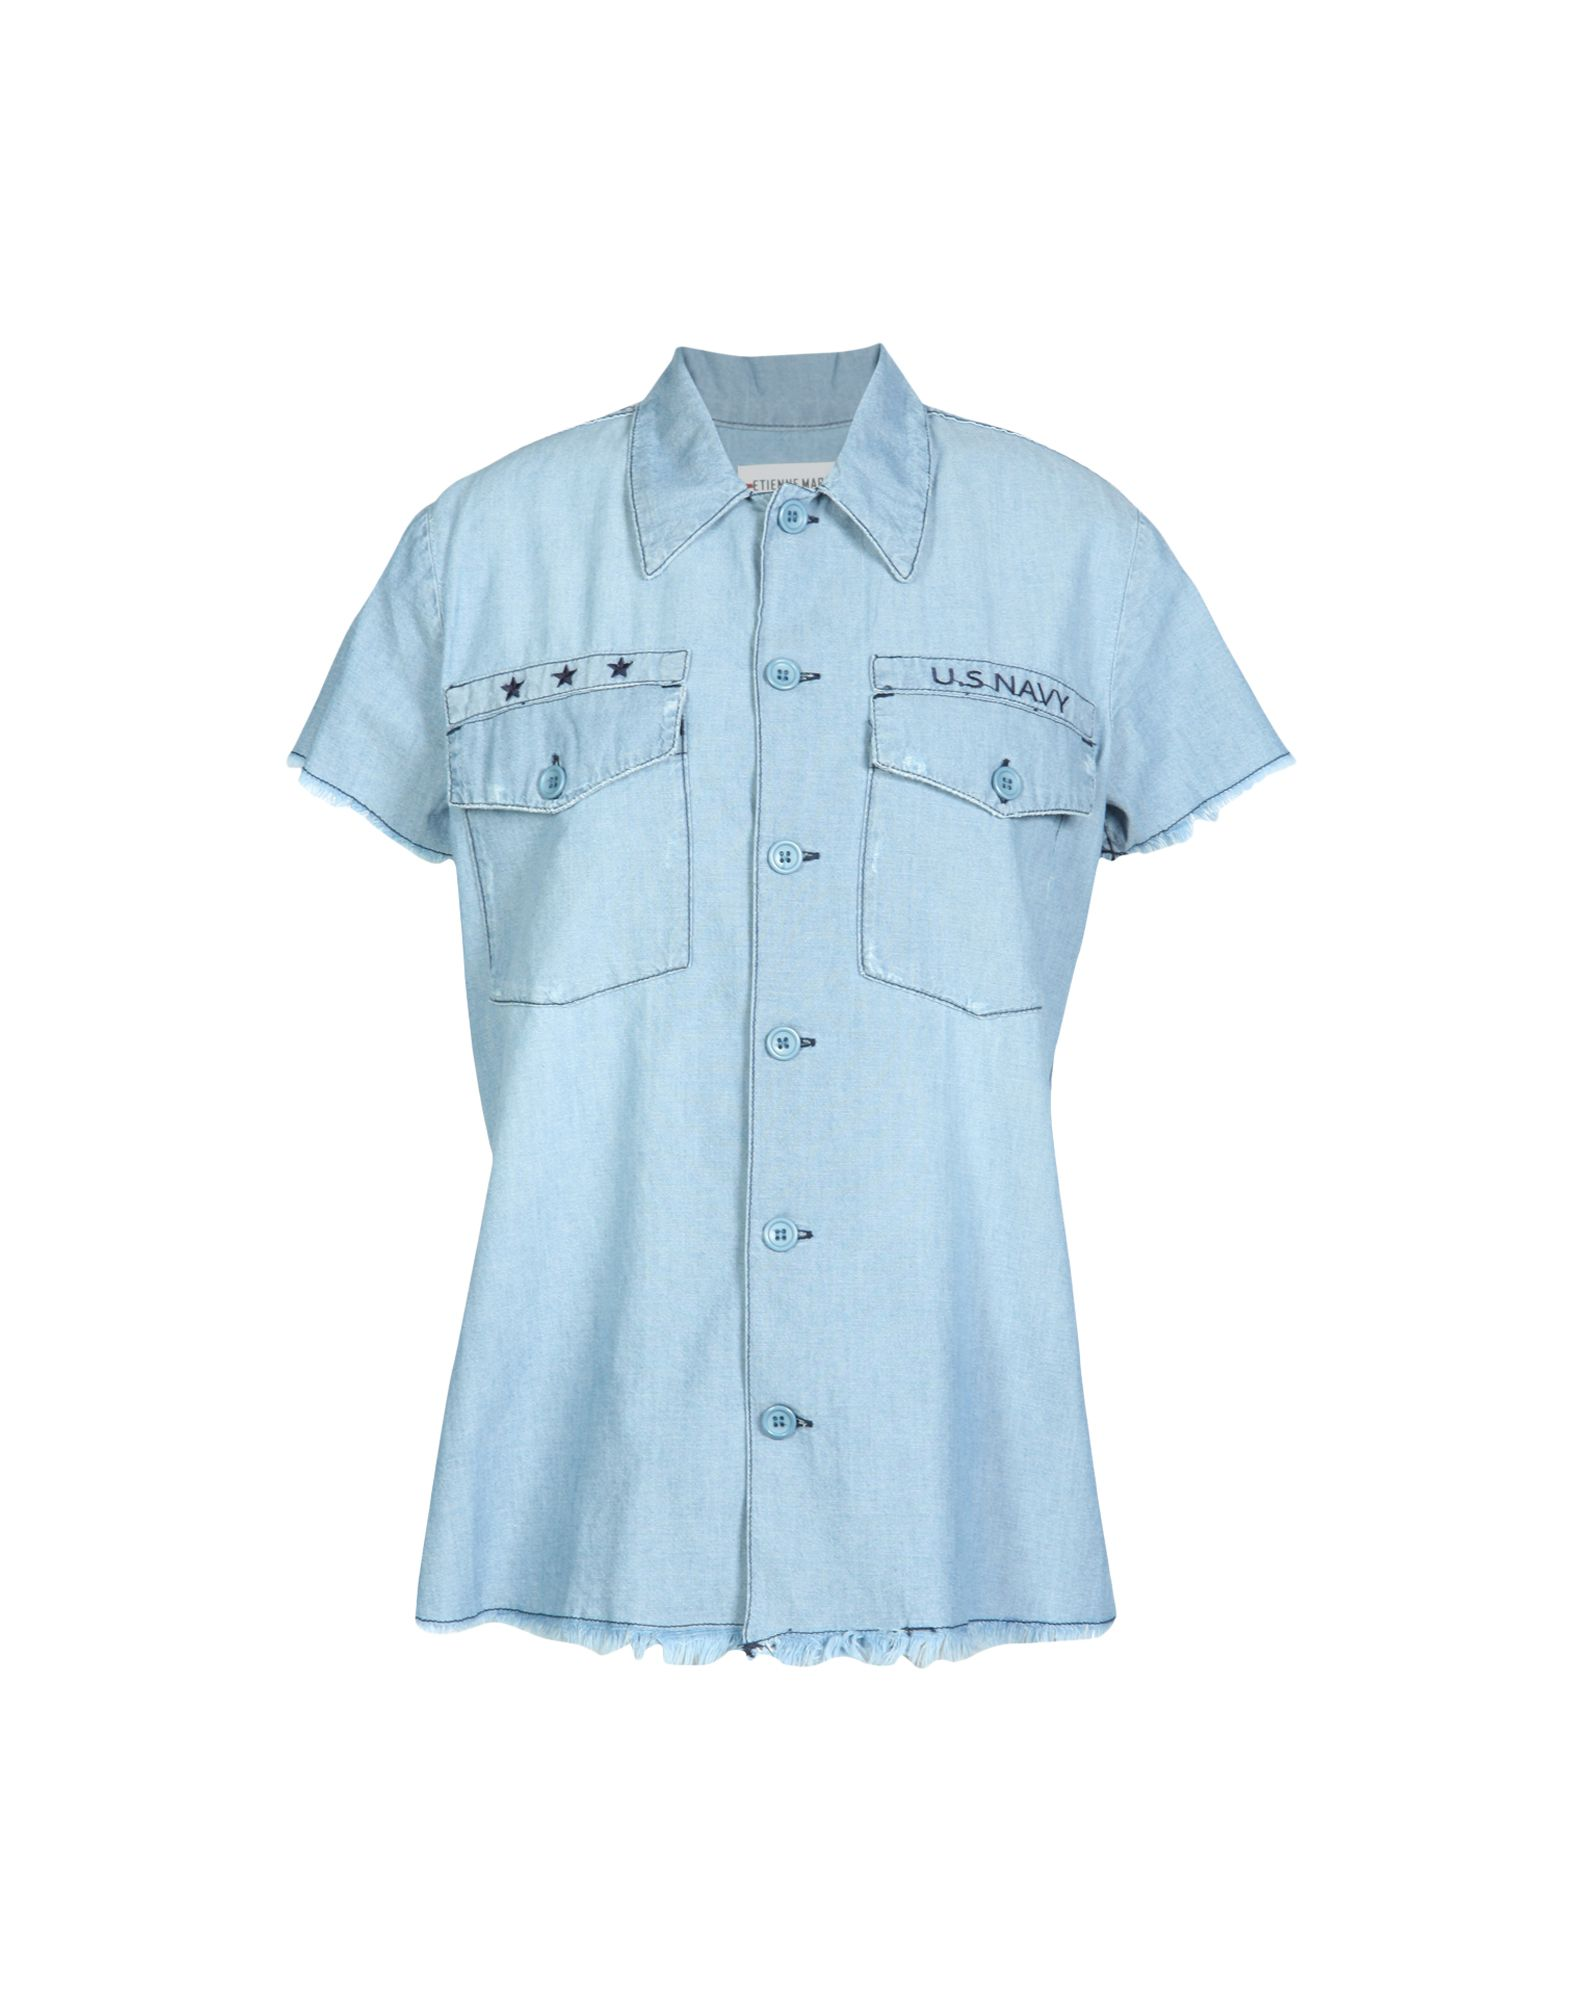 ETIENNE MARCEL Denim Shirts in Blue